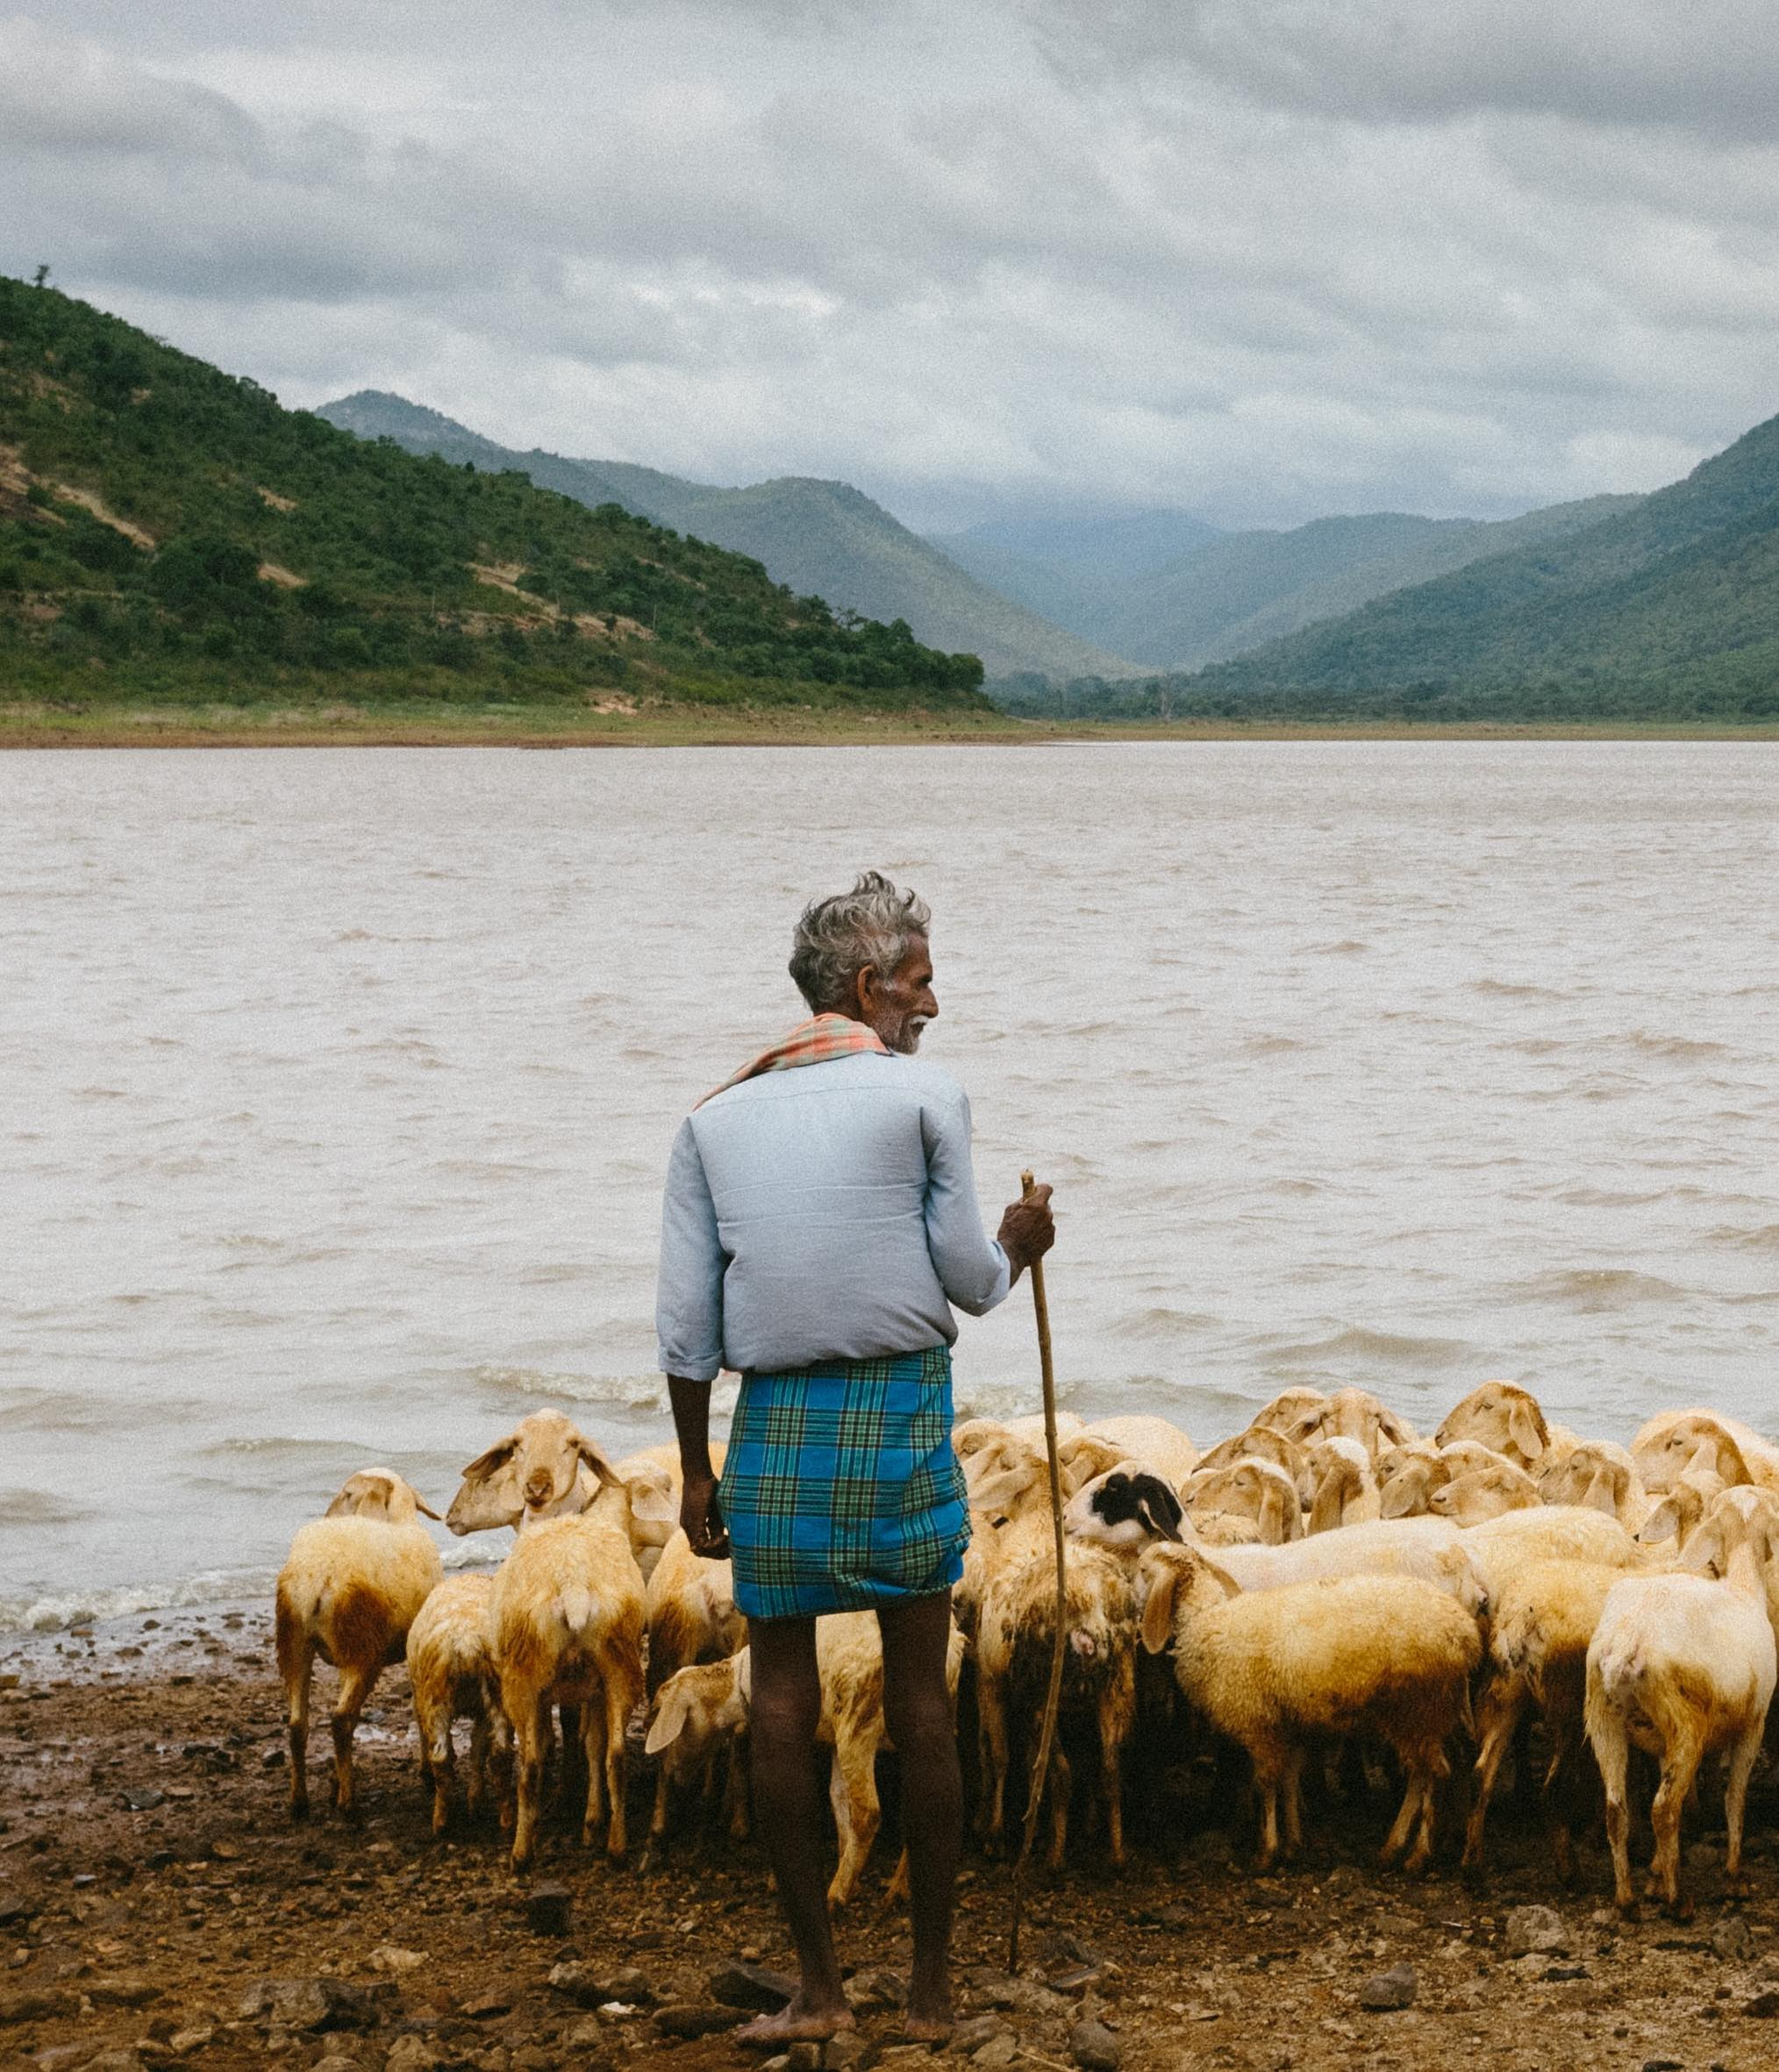 shepherd standing at water's edge with sheep